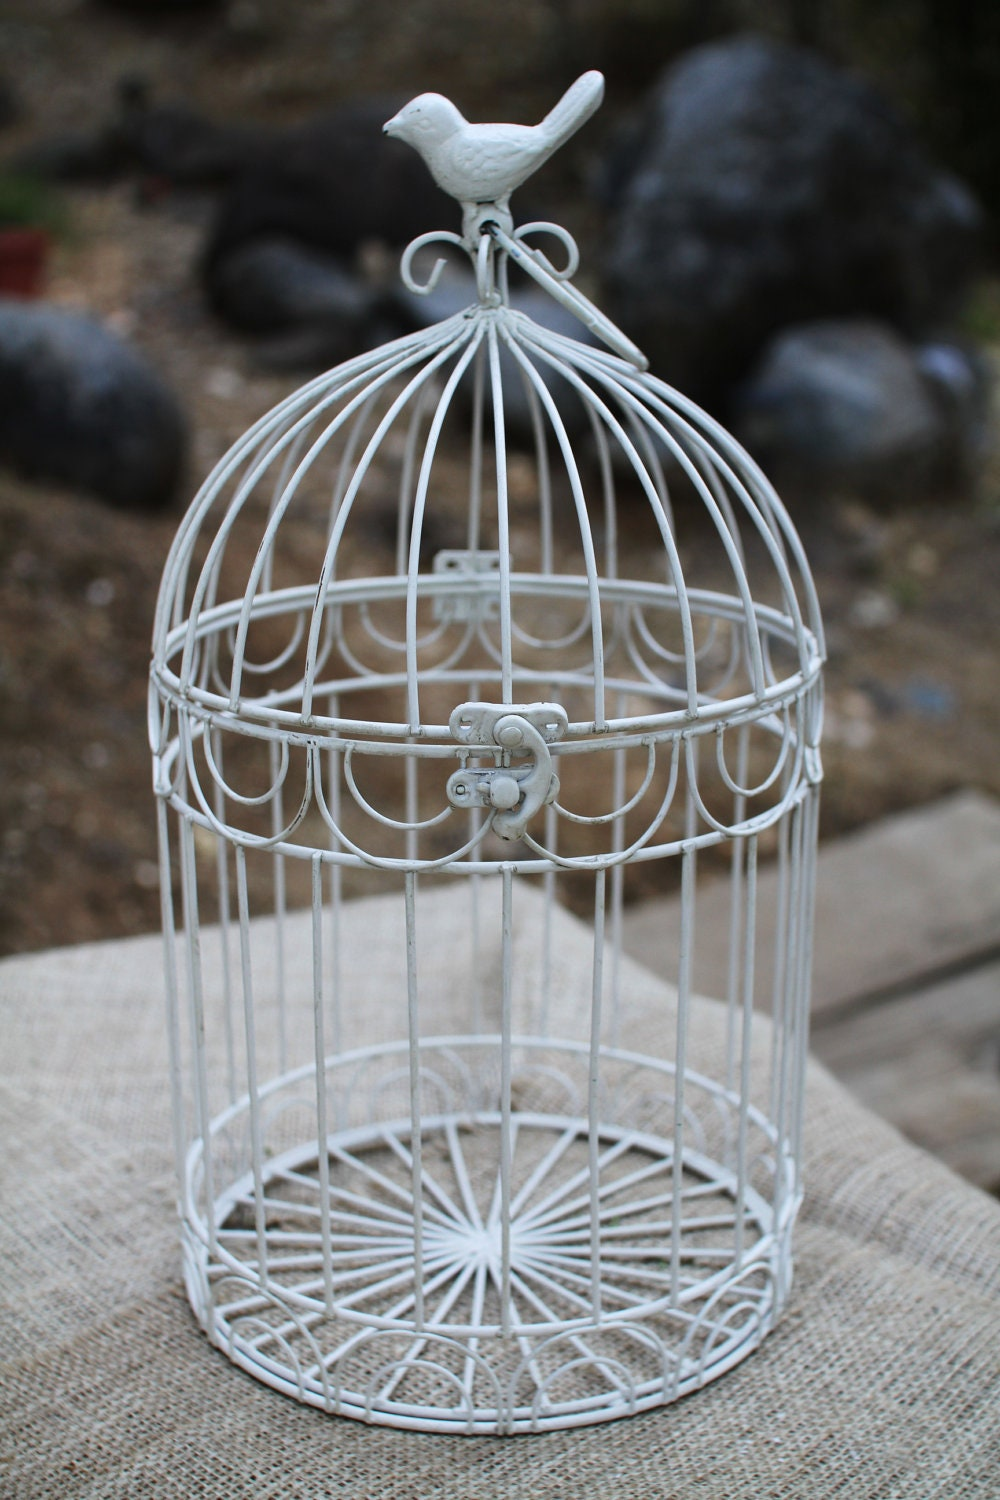 Painted Vintage Wire Bird Cage Decor Or Candle Holder With